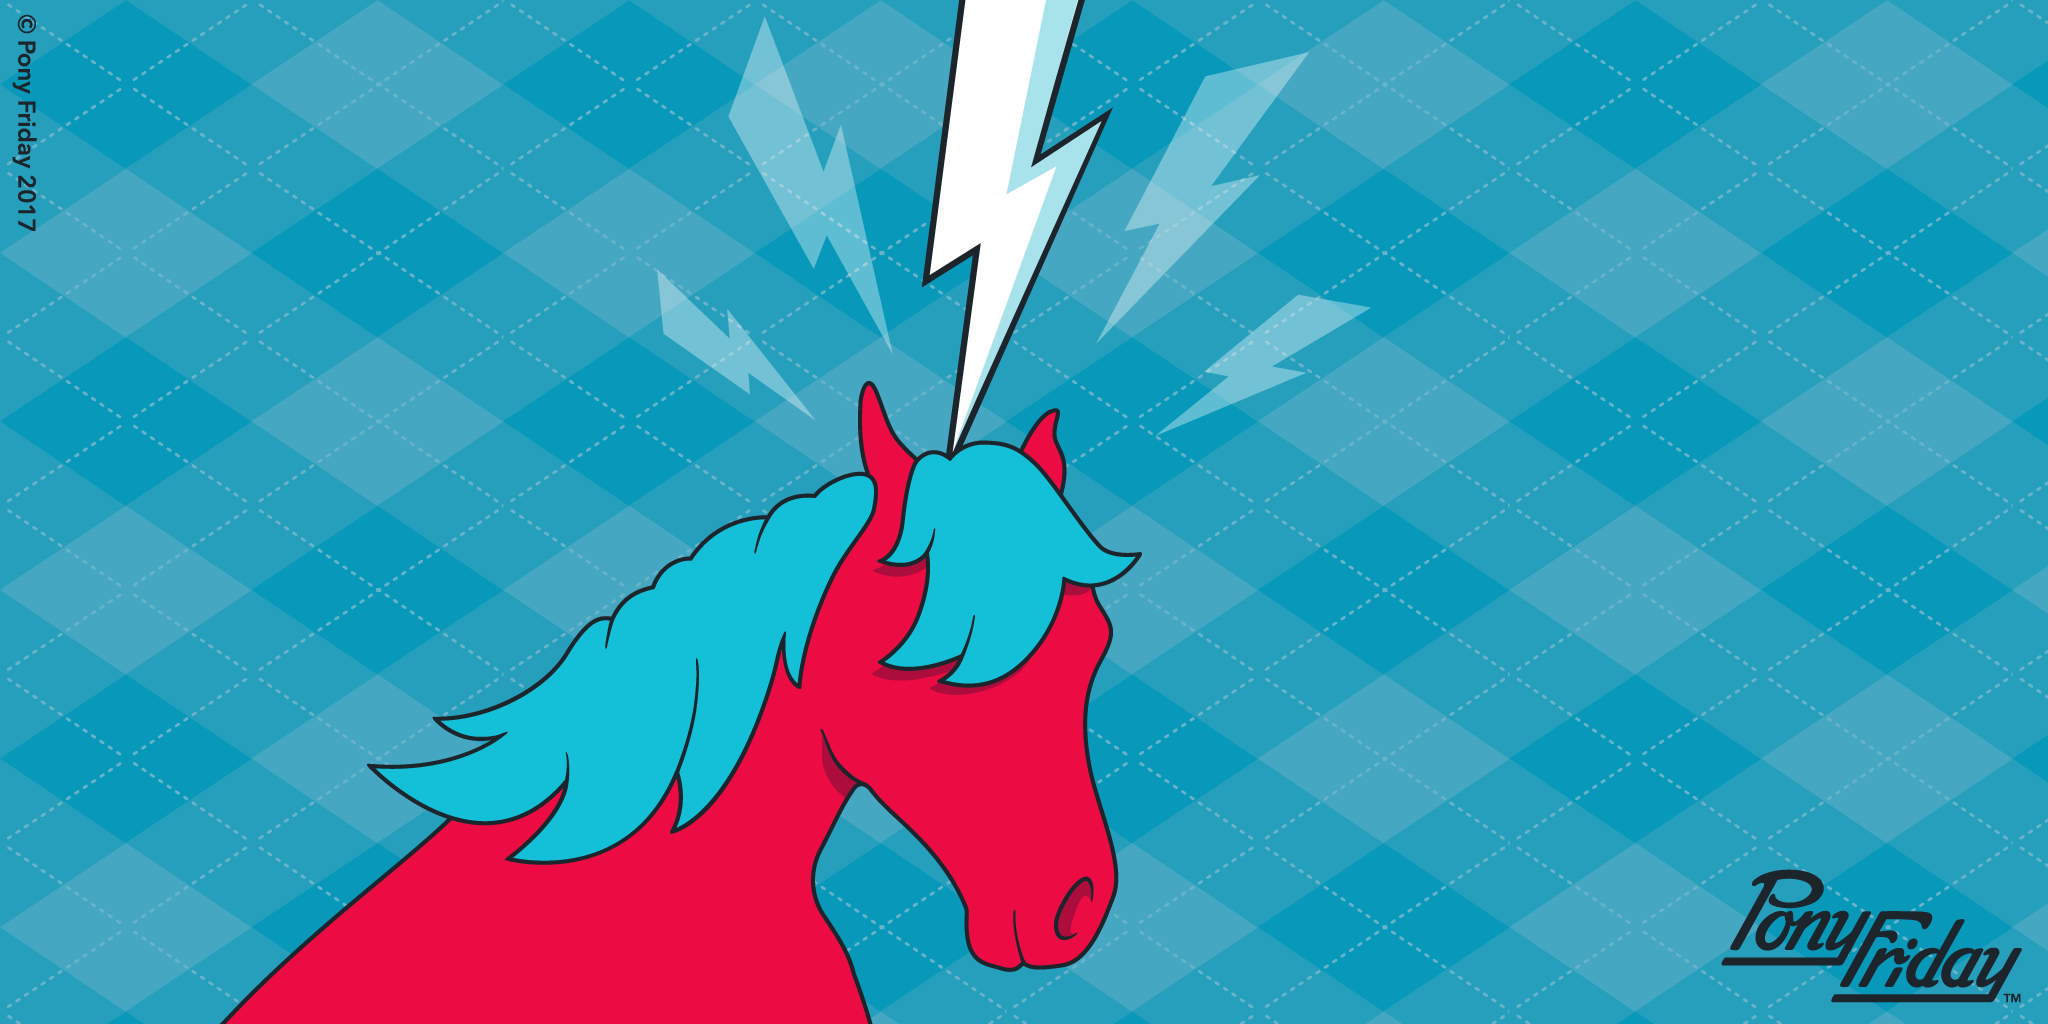 Pony-Friday-Lightning-Strikes-Horse-Connection-Blog-Header-Image.png